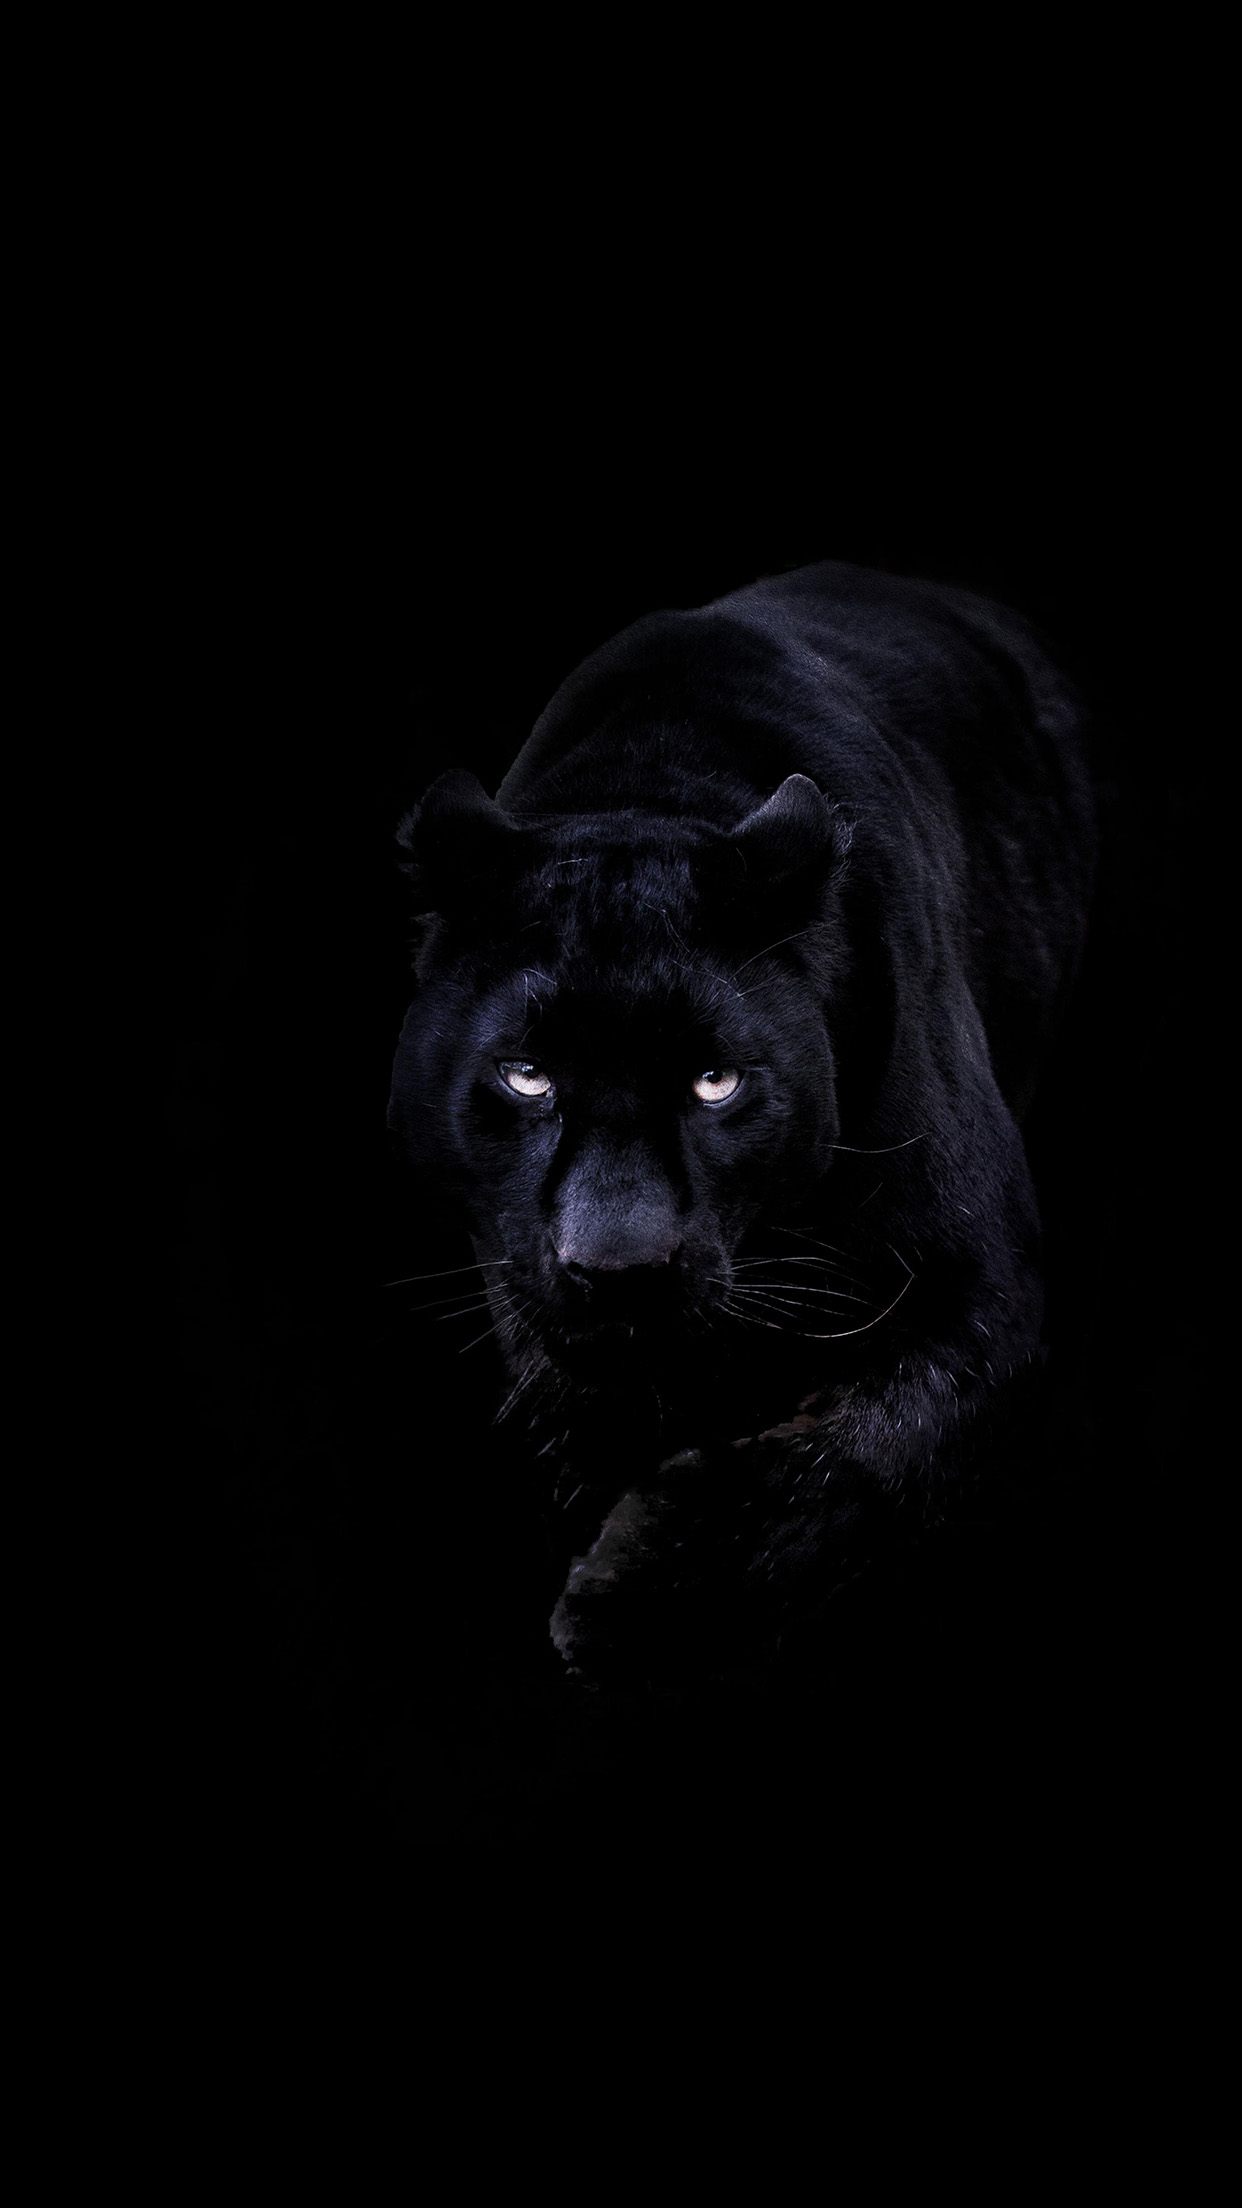 Bd93 Animal Dark Black Pahter Art Illustration Wallpaper